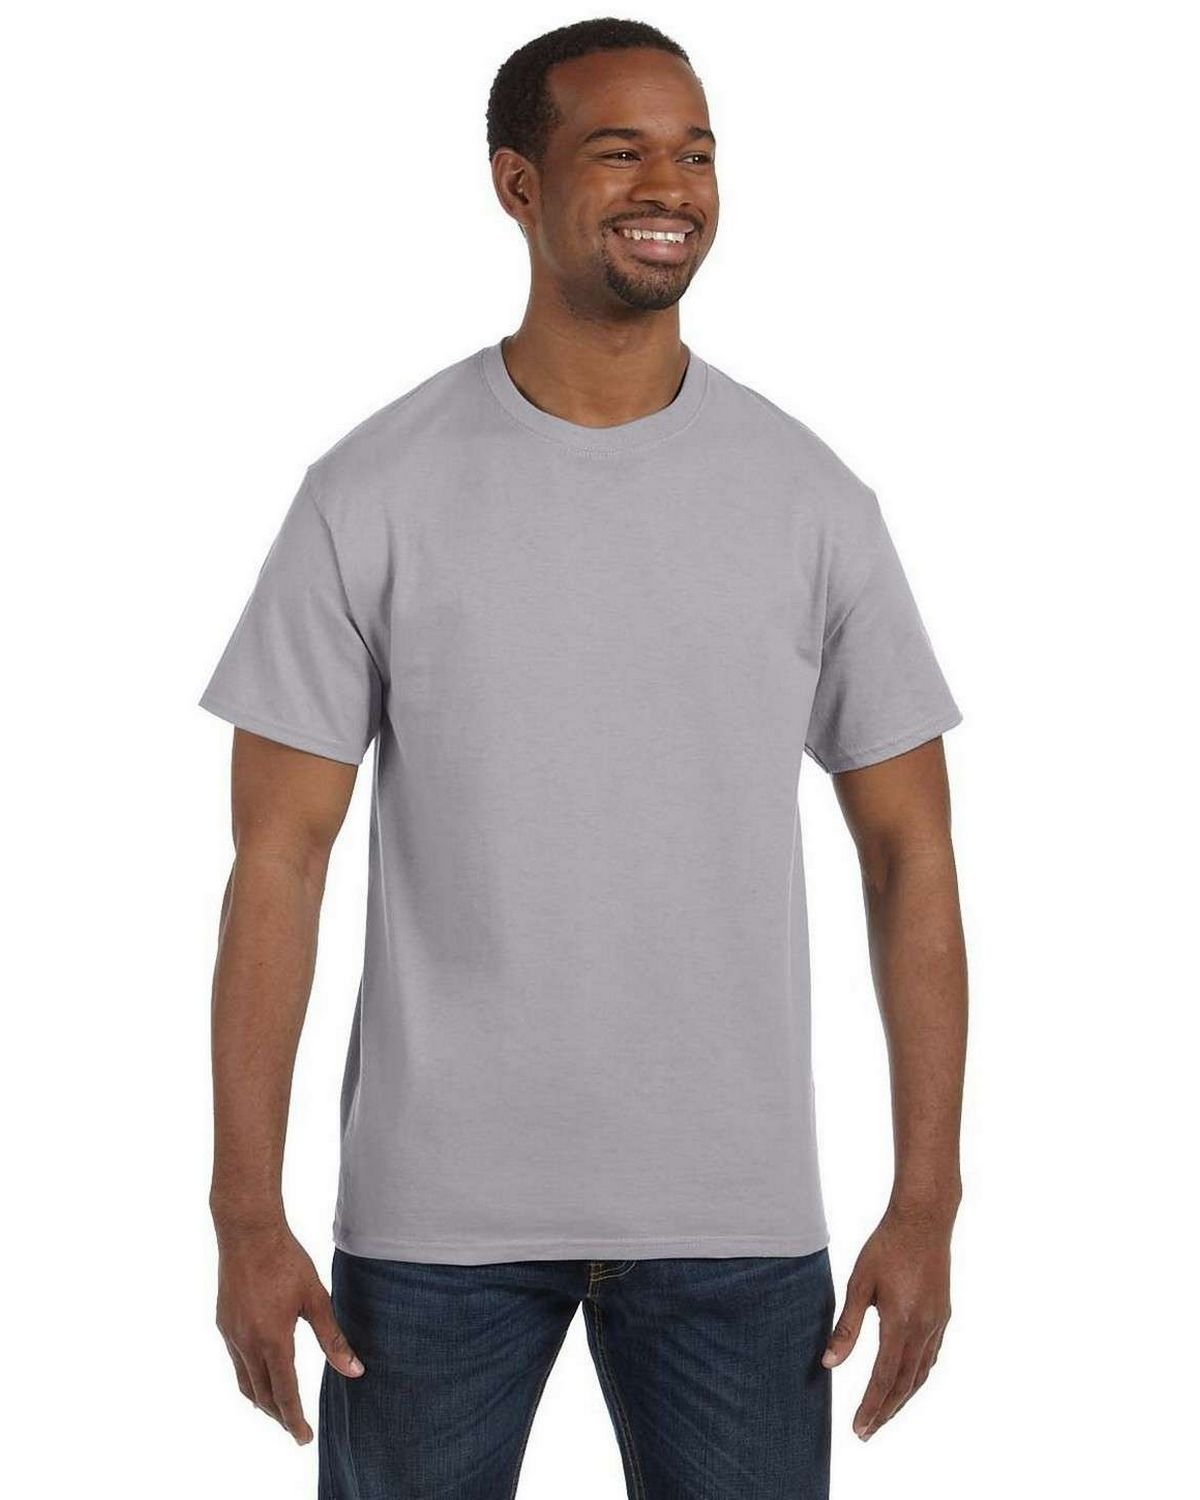 Hanes 5250T Men's Tagless T Shirt - Oxford Grey - S from Hanes